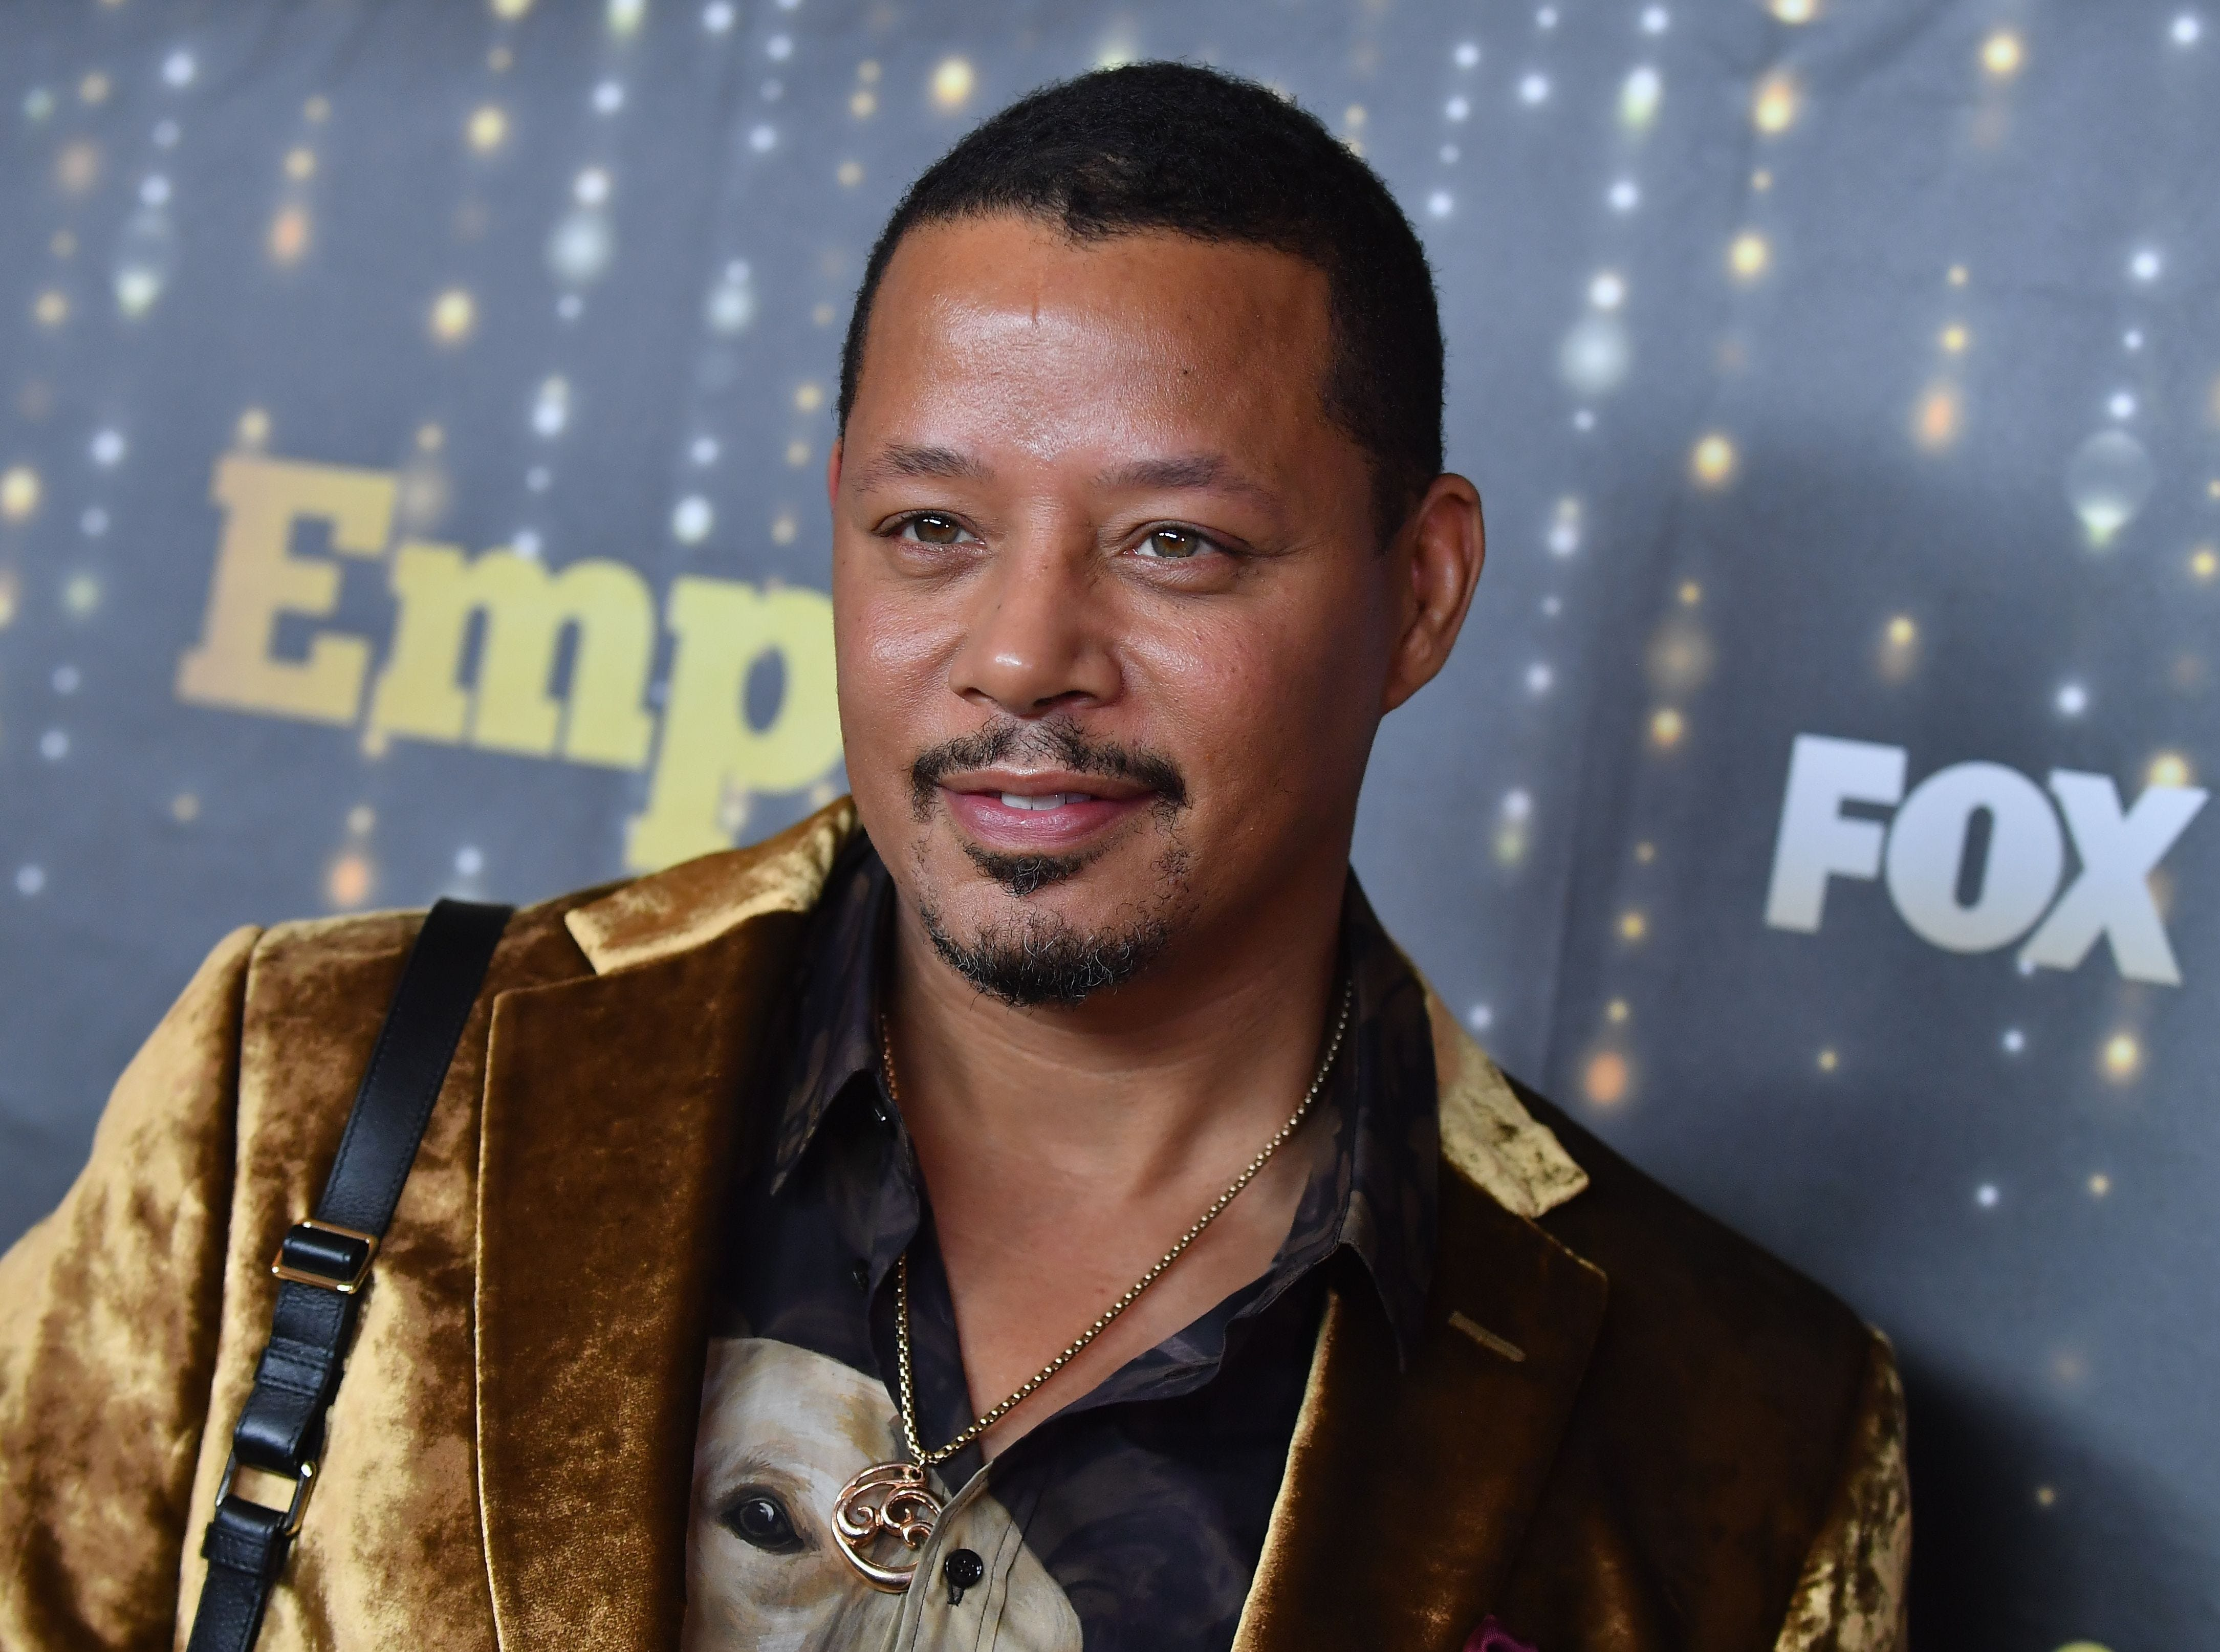 Terrence Howard turns 50 on March 11.